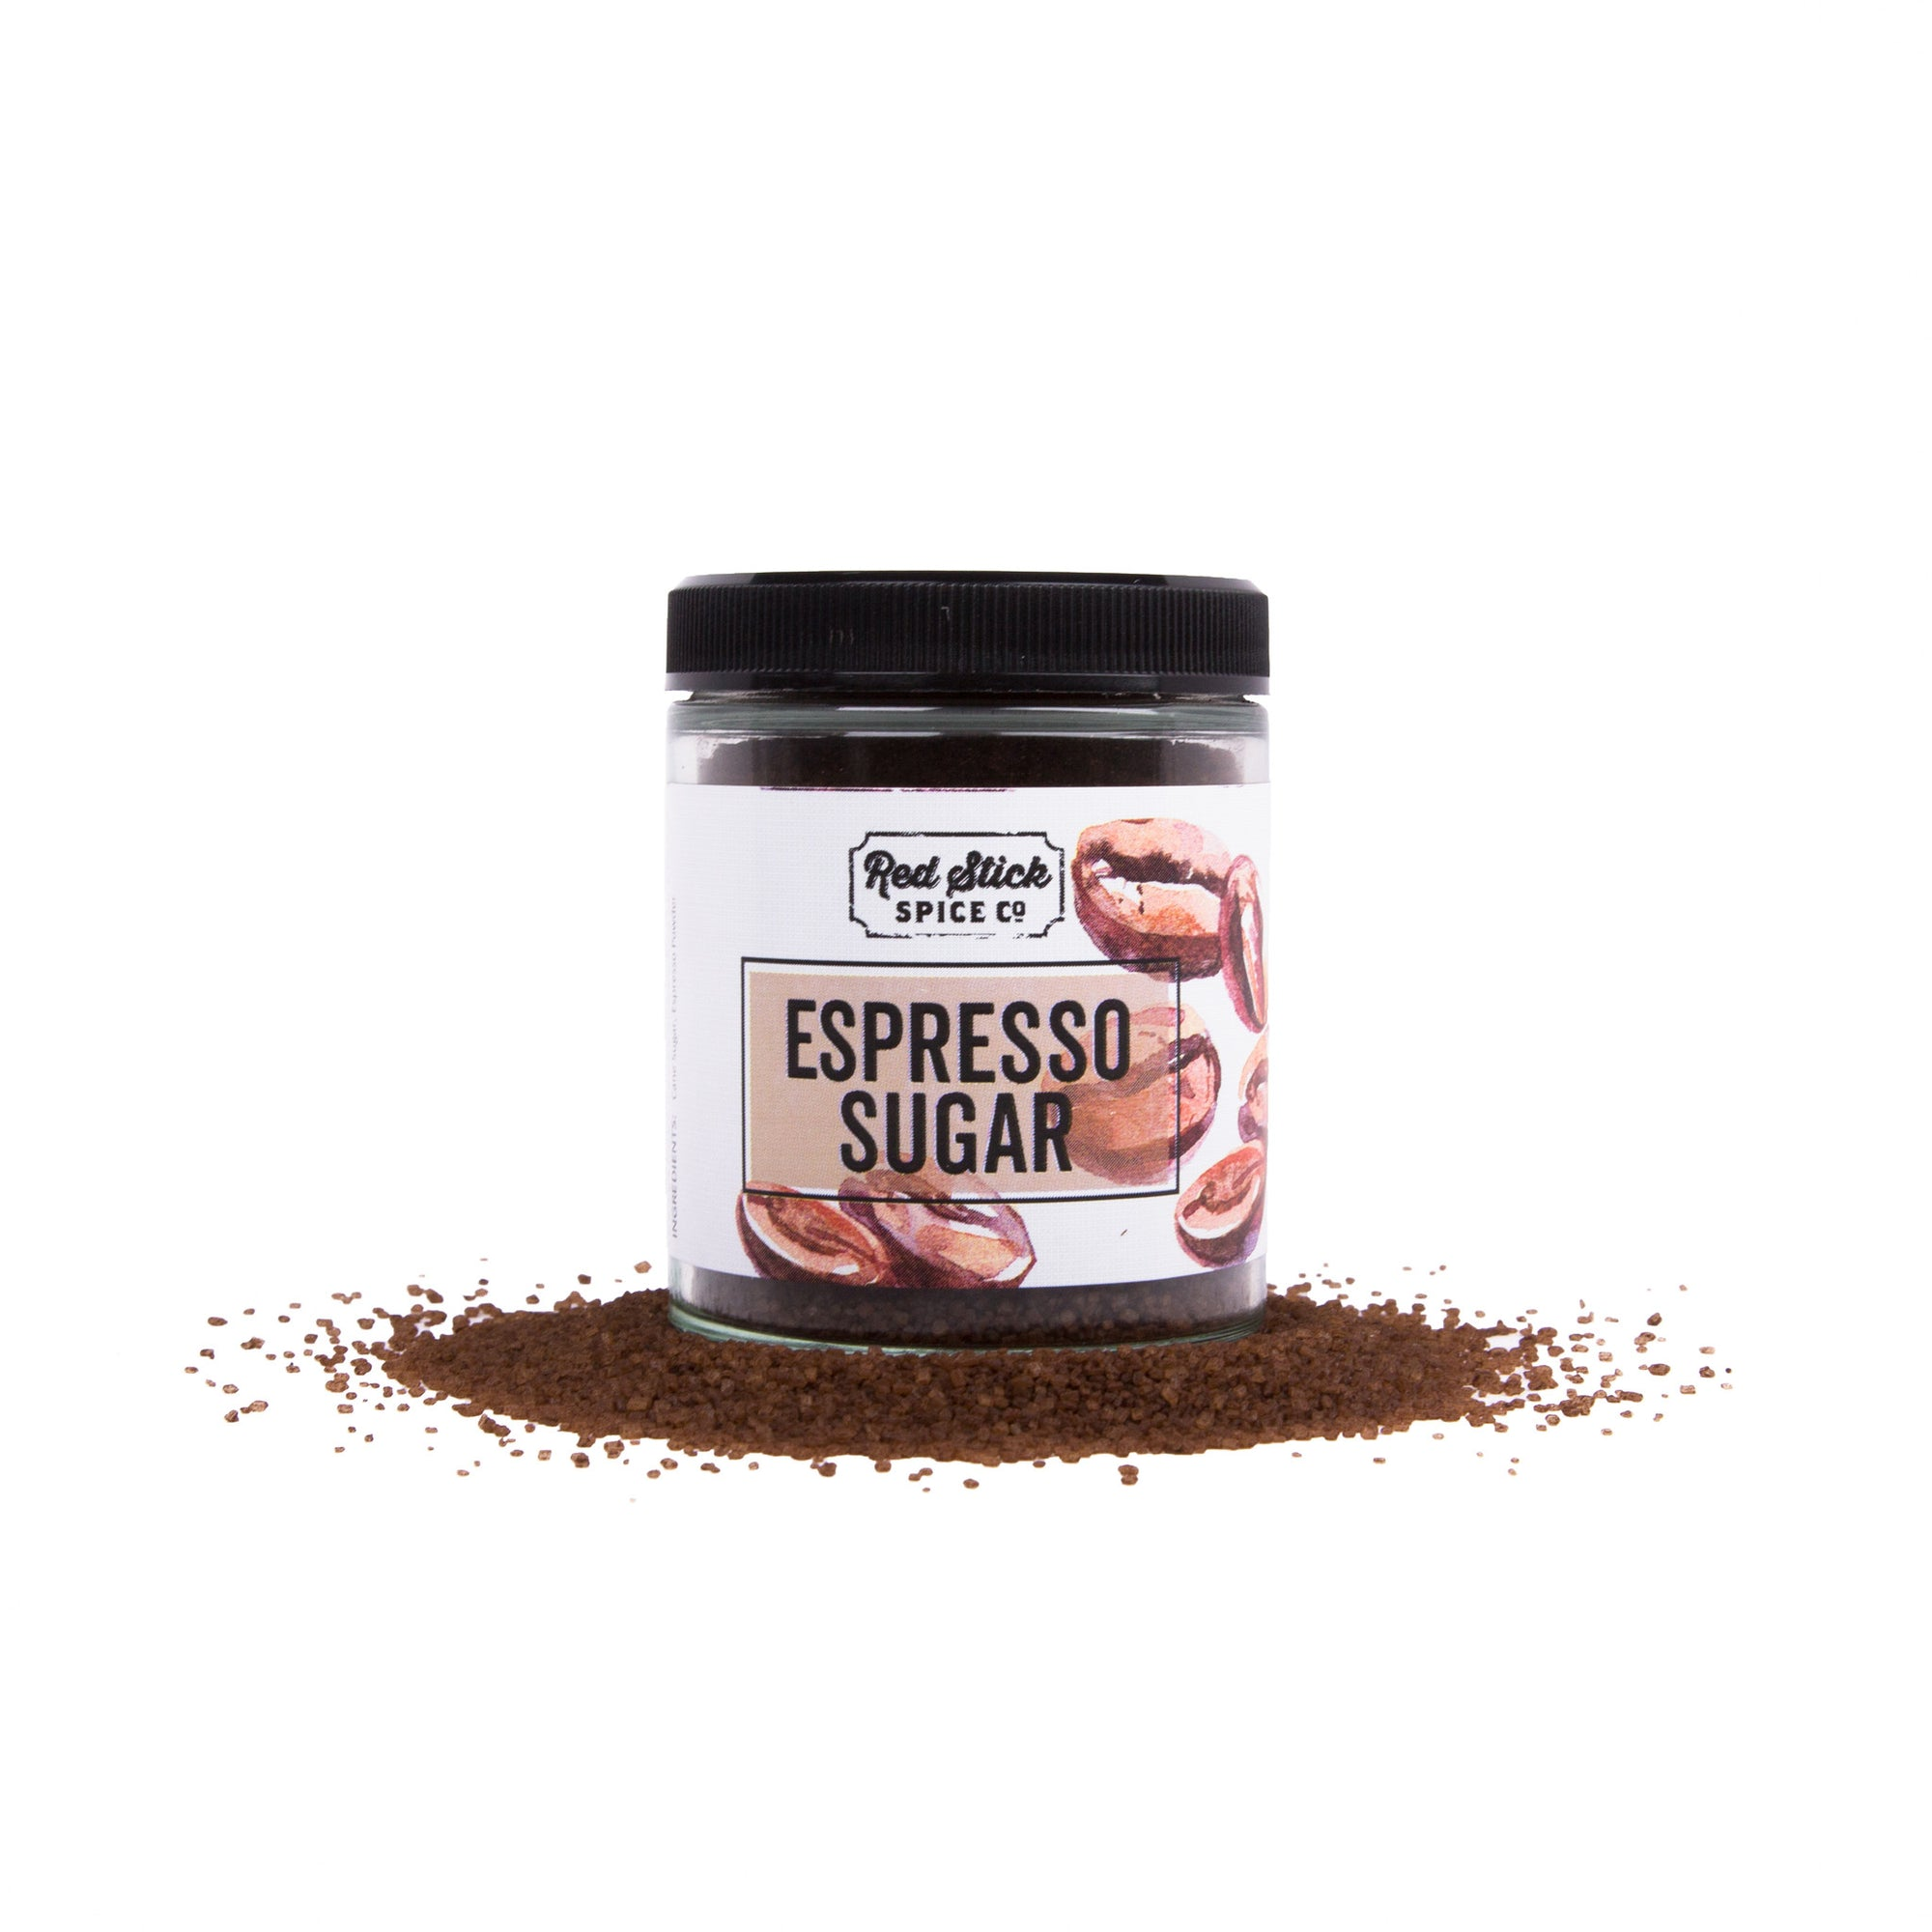 Espresso Sugar - Premium_Spices - Red Stick Spice Company